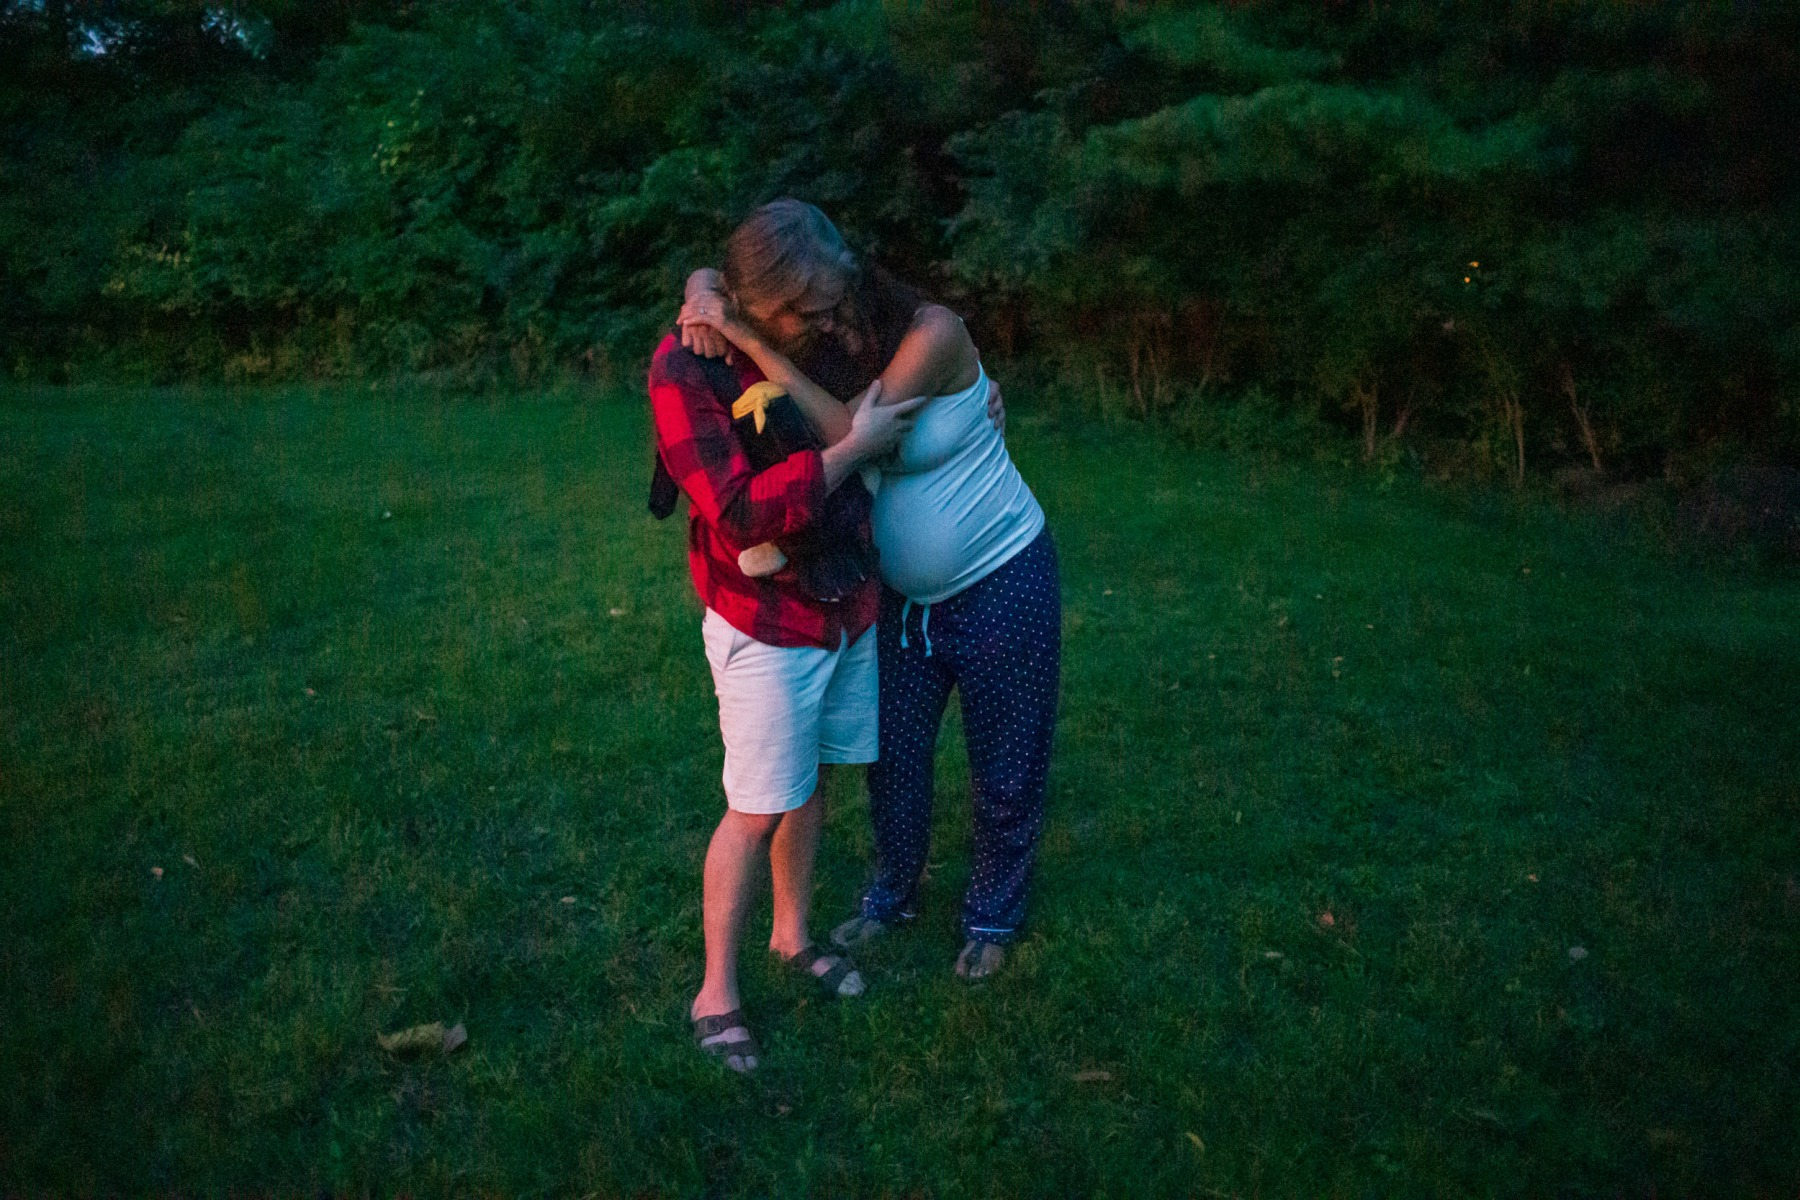 7:47pm - Seth supports his wife, Kate, through a strong contraction in their backyard in Columbus, Ohio. Their midwife encouraged Kate to walk around to help progress labor.